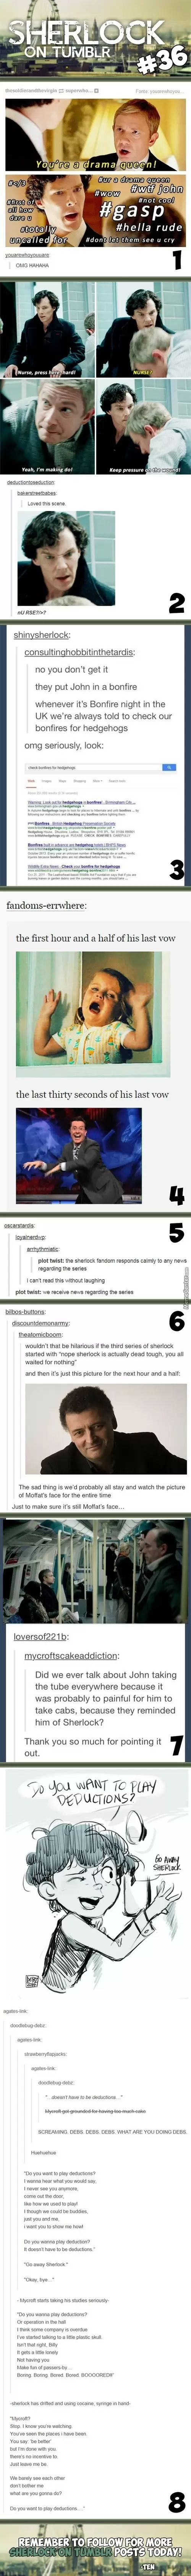 Sherlock On Tumblr #36<<man that last one was sad as heck..my eyes might have become blurry, slightly